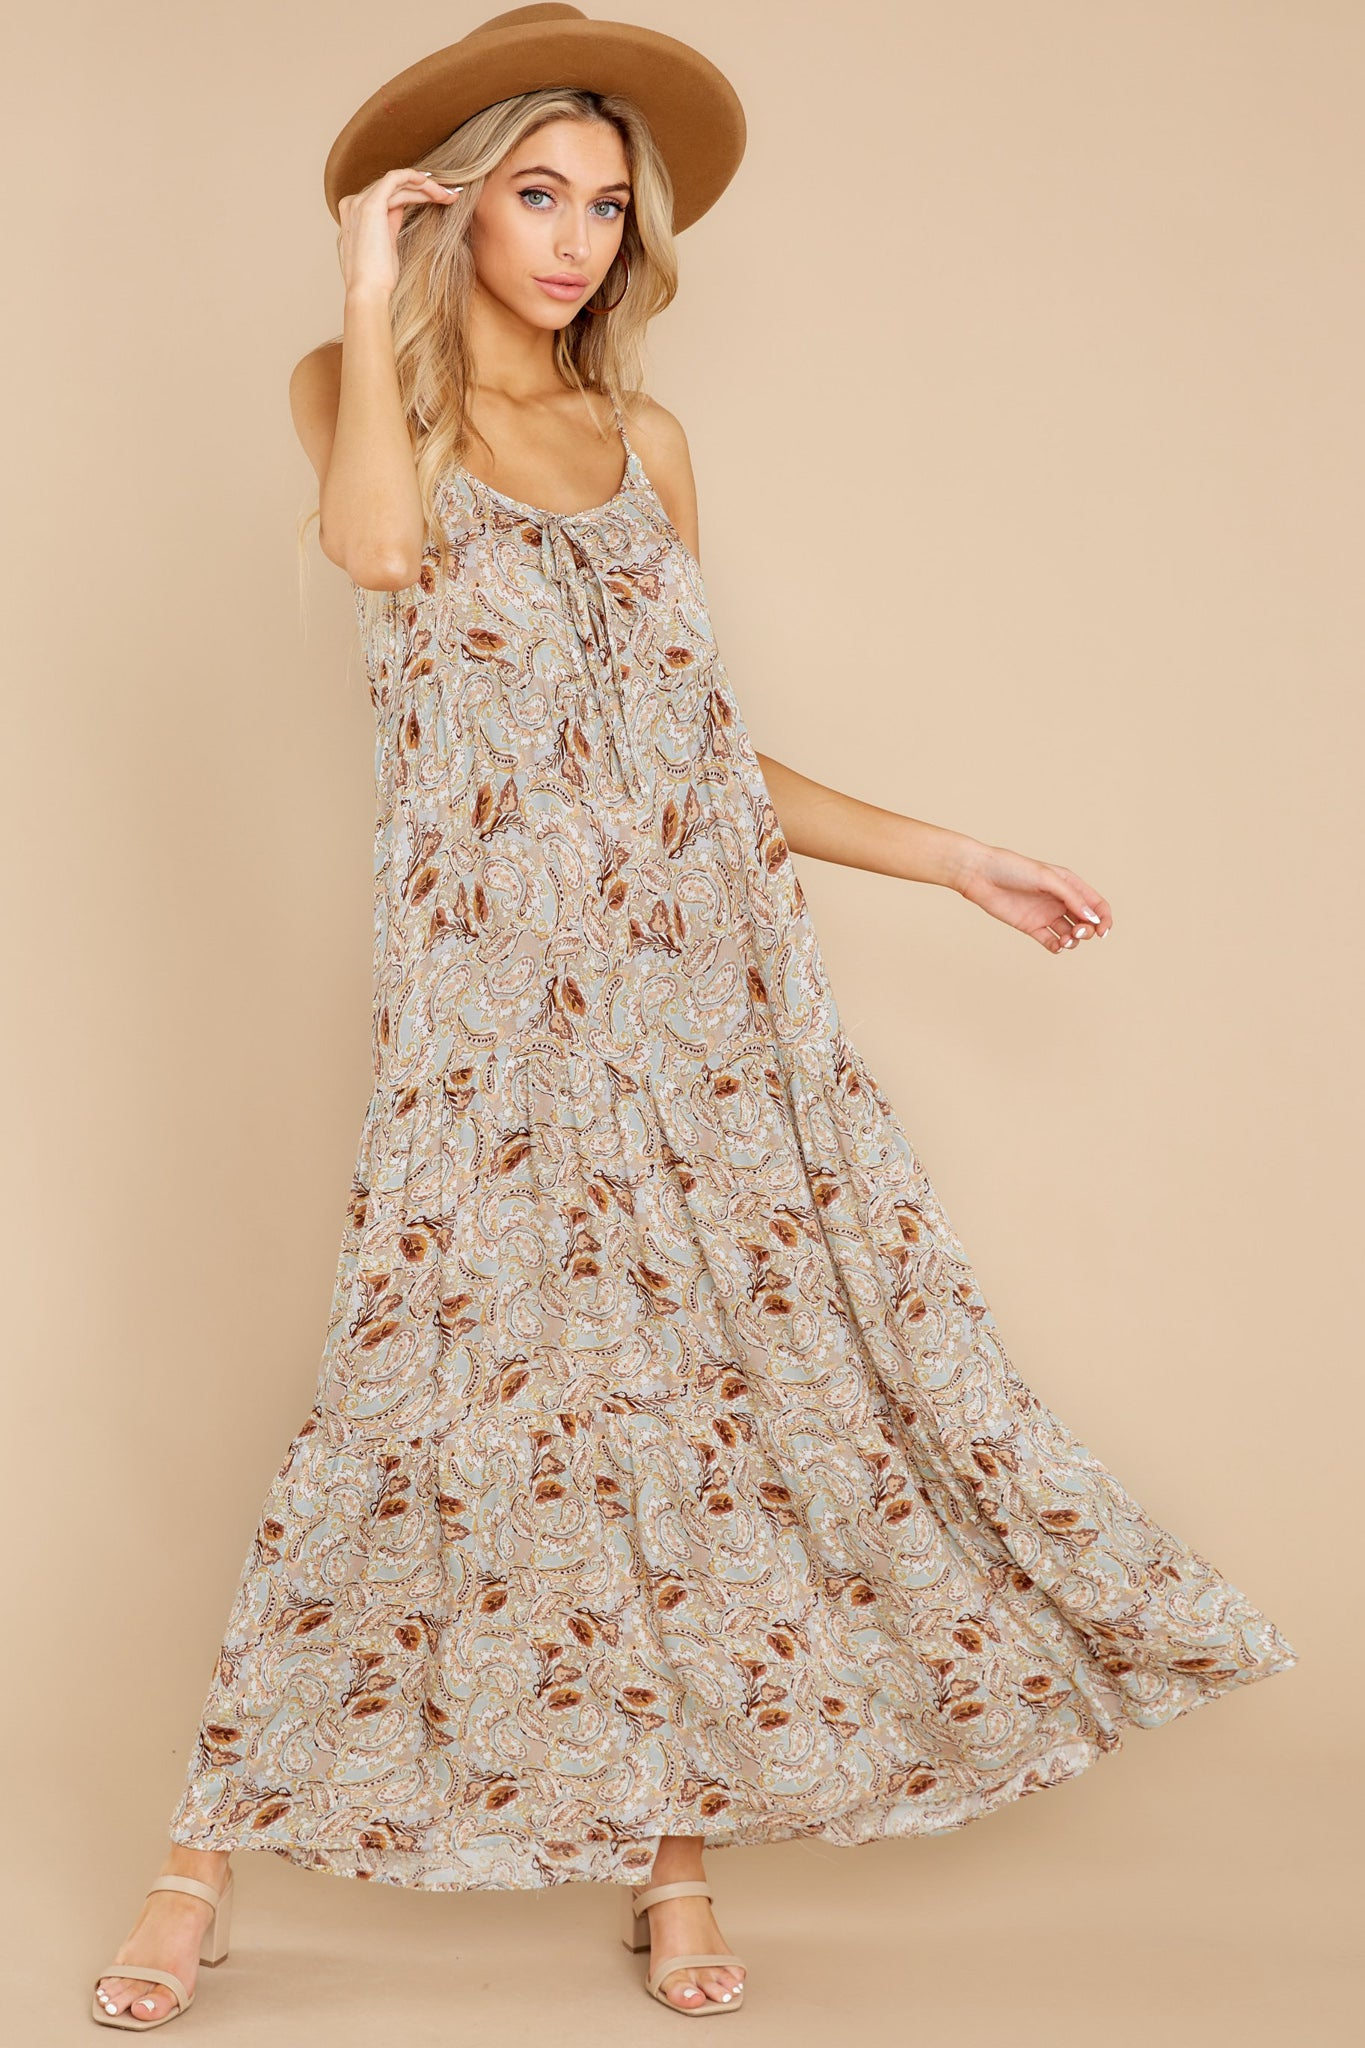 5 Fallen For You Sage And Rust Multi Print Maxi Dress at reddress.com